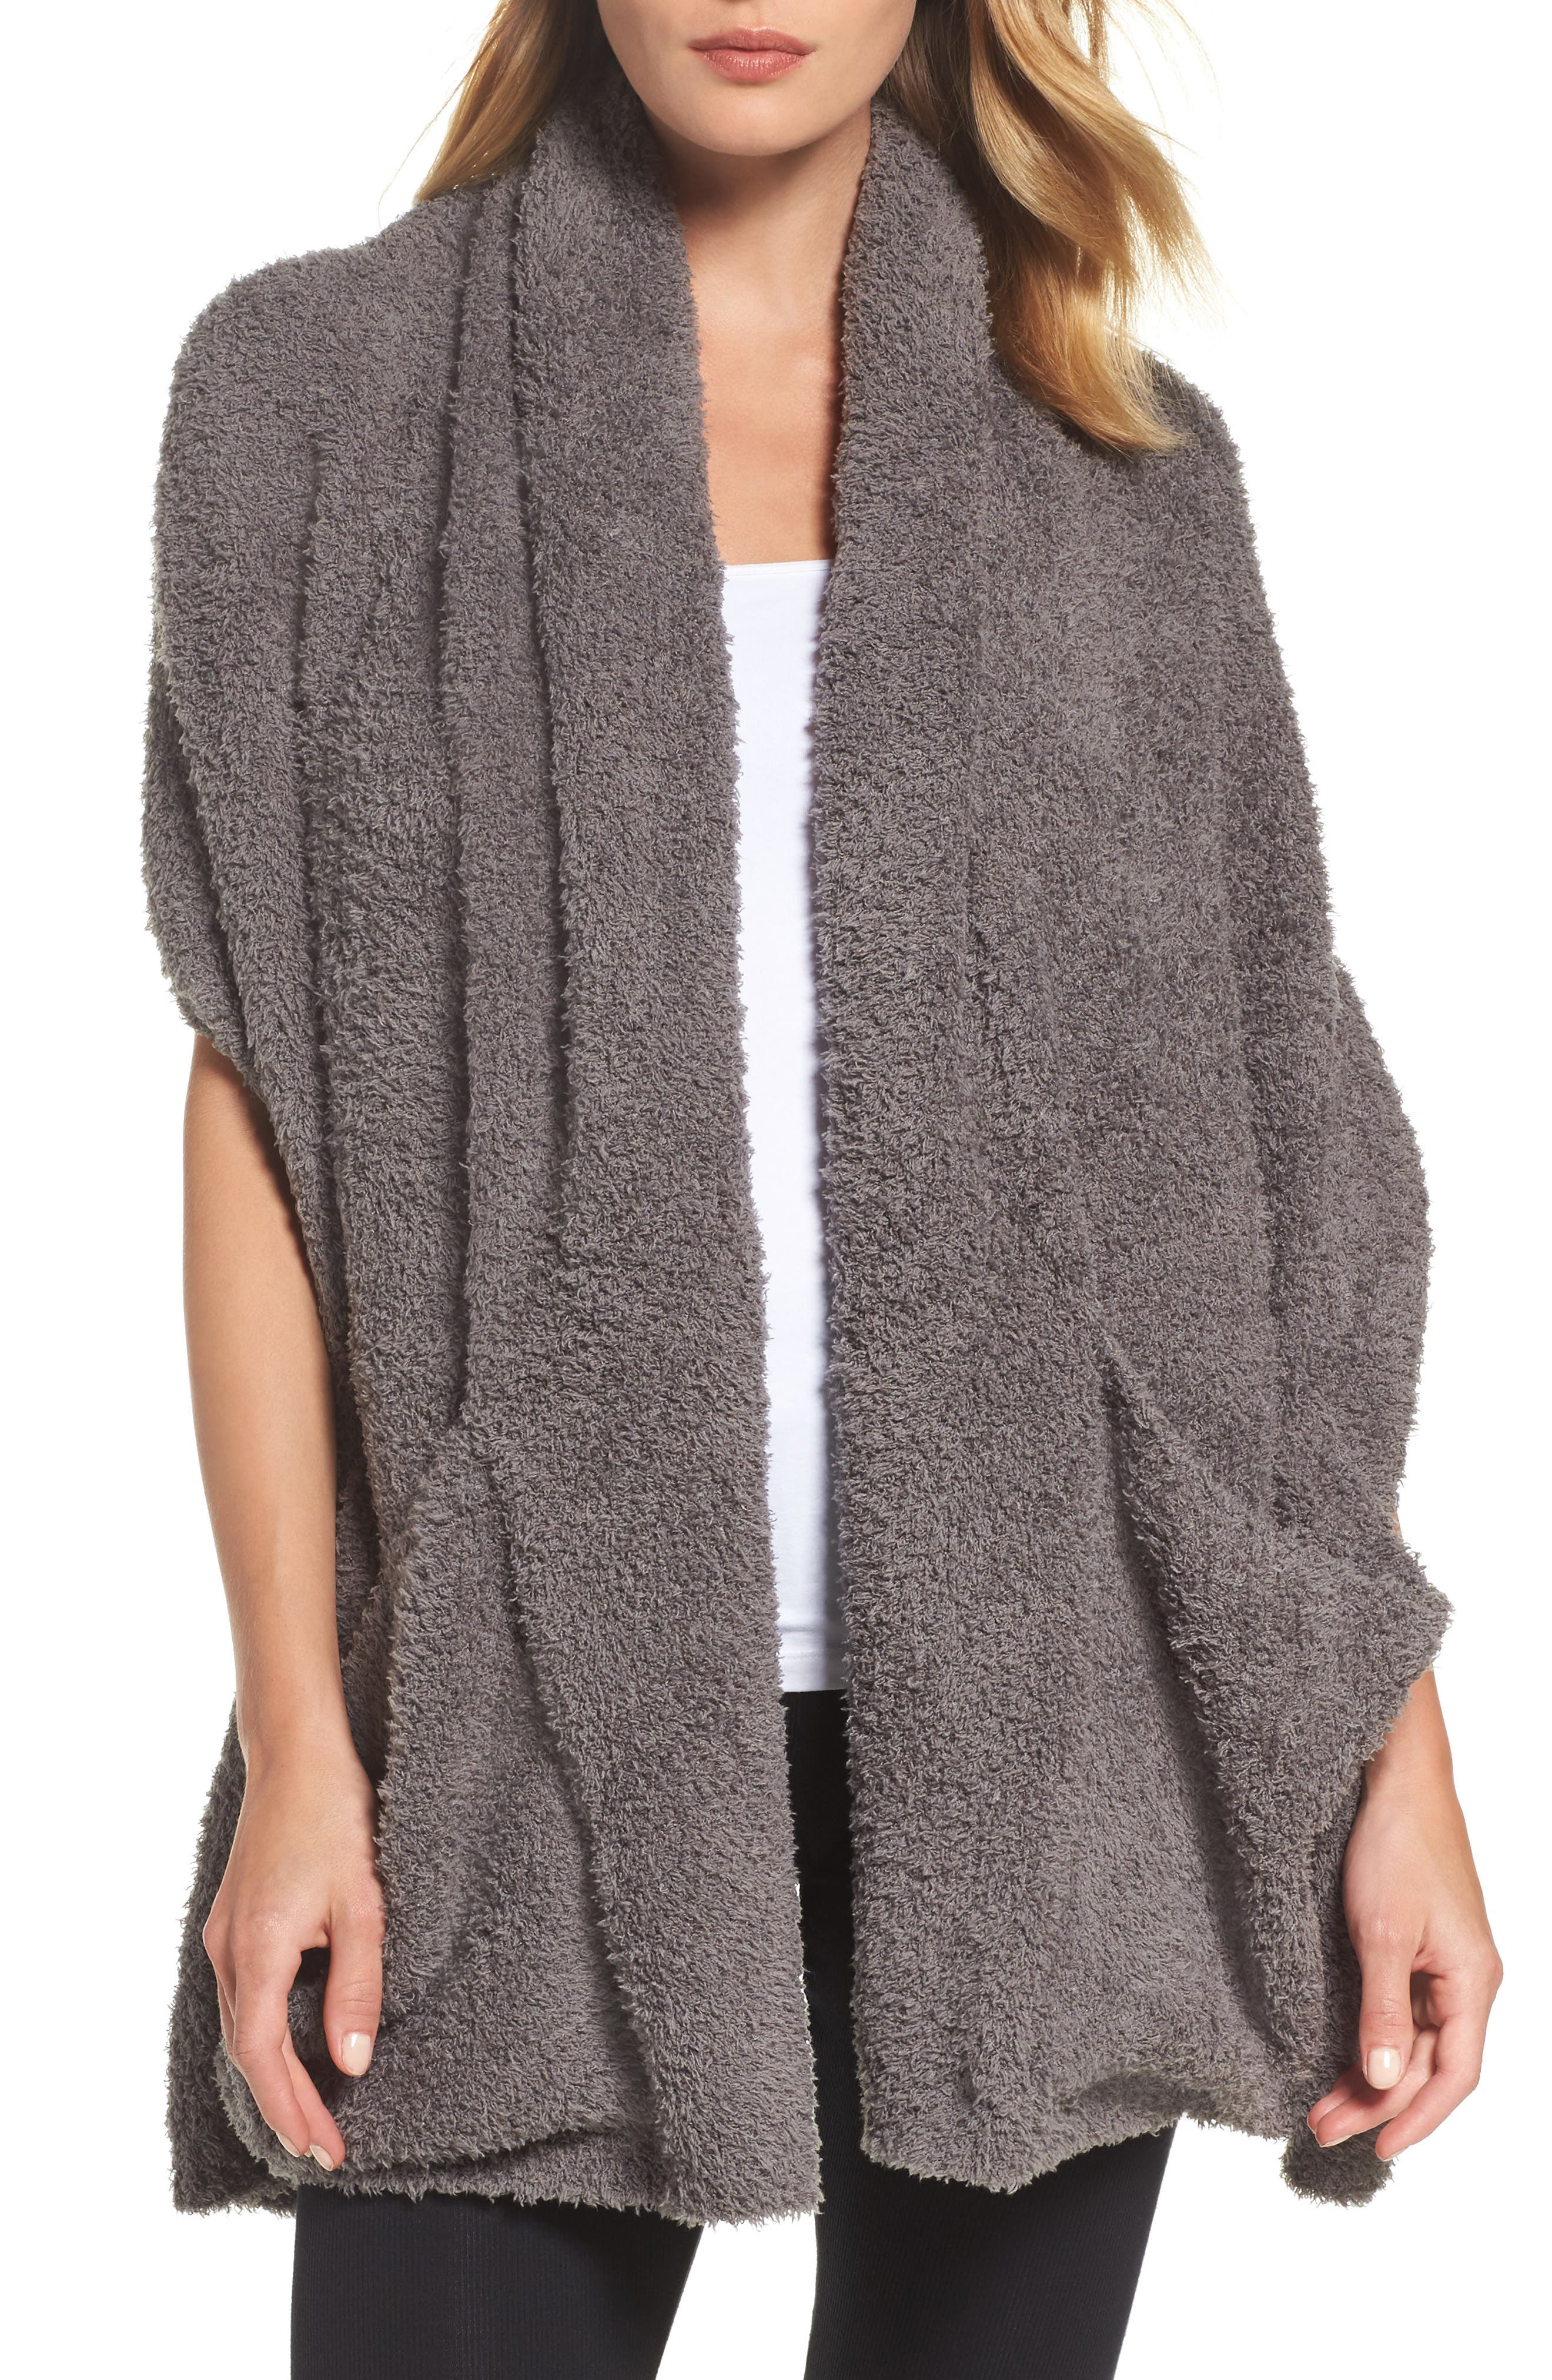 Barefoot Dreams Cozychic Travel Shawl, Size - (Online Only)